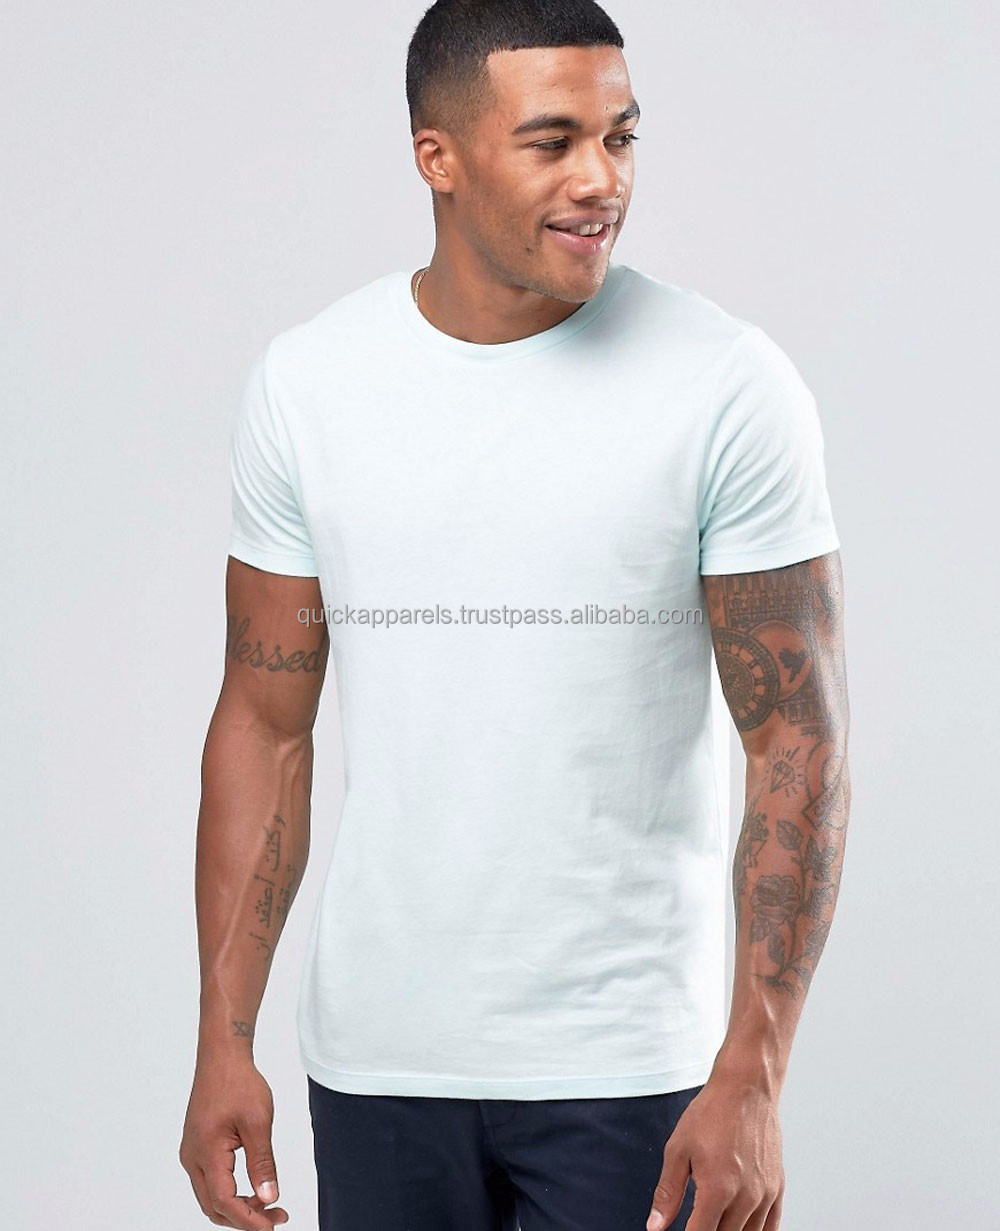 STEEL GREY 100% High-Grade, soft touch, breathable & crease proof polyester BREATHEASY mens t shirts custom